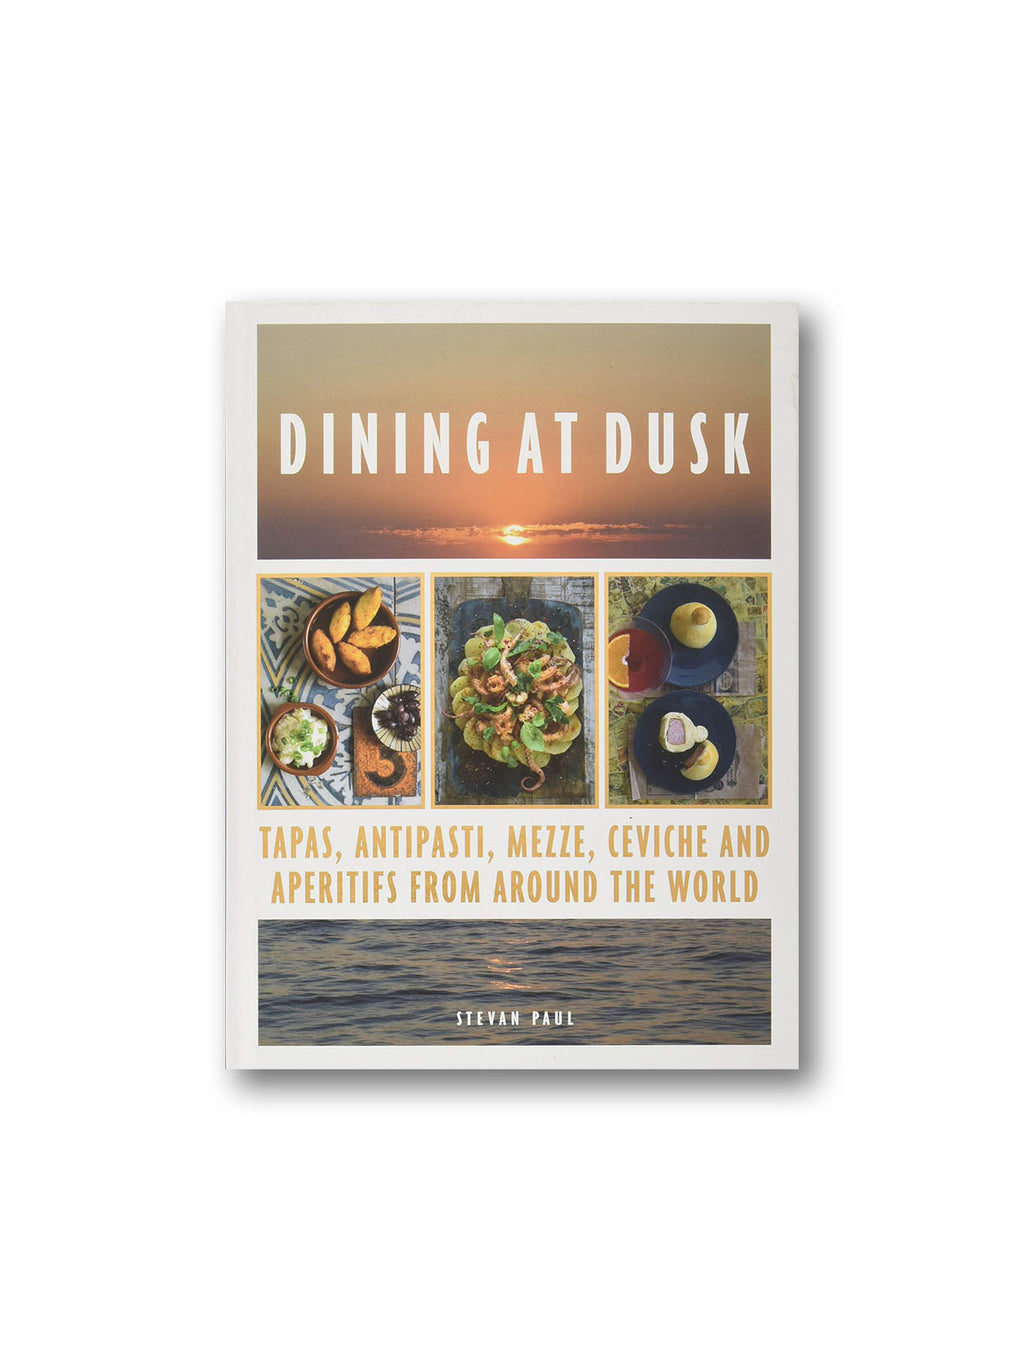 Dining at Dusk : Tapas, Antipasti, Mezze, Ceviche and Aperitifs from Around the World